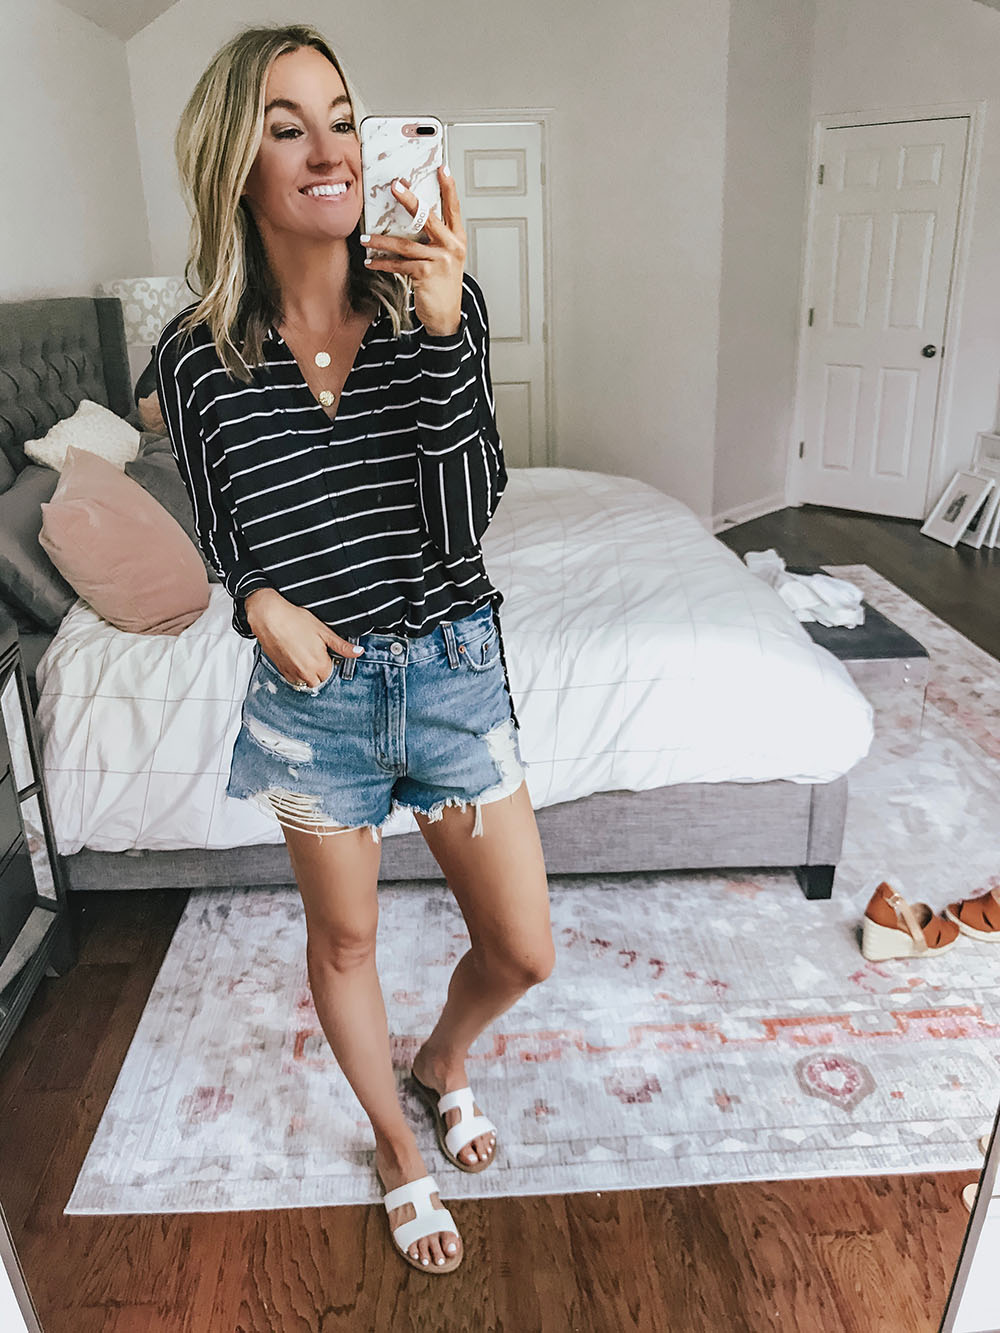 dc6c1a315f4 I m so excited to share an affordable Walmart Try On full of some really  great Spring finds! It s been a hot second since I did a full try-on with  ...